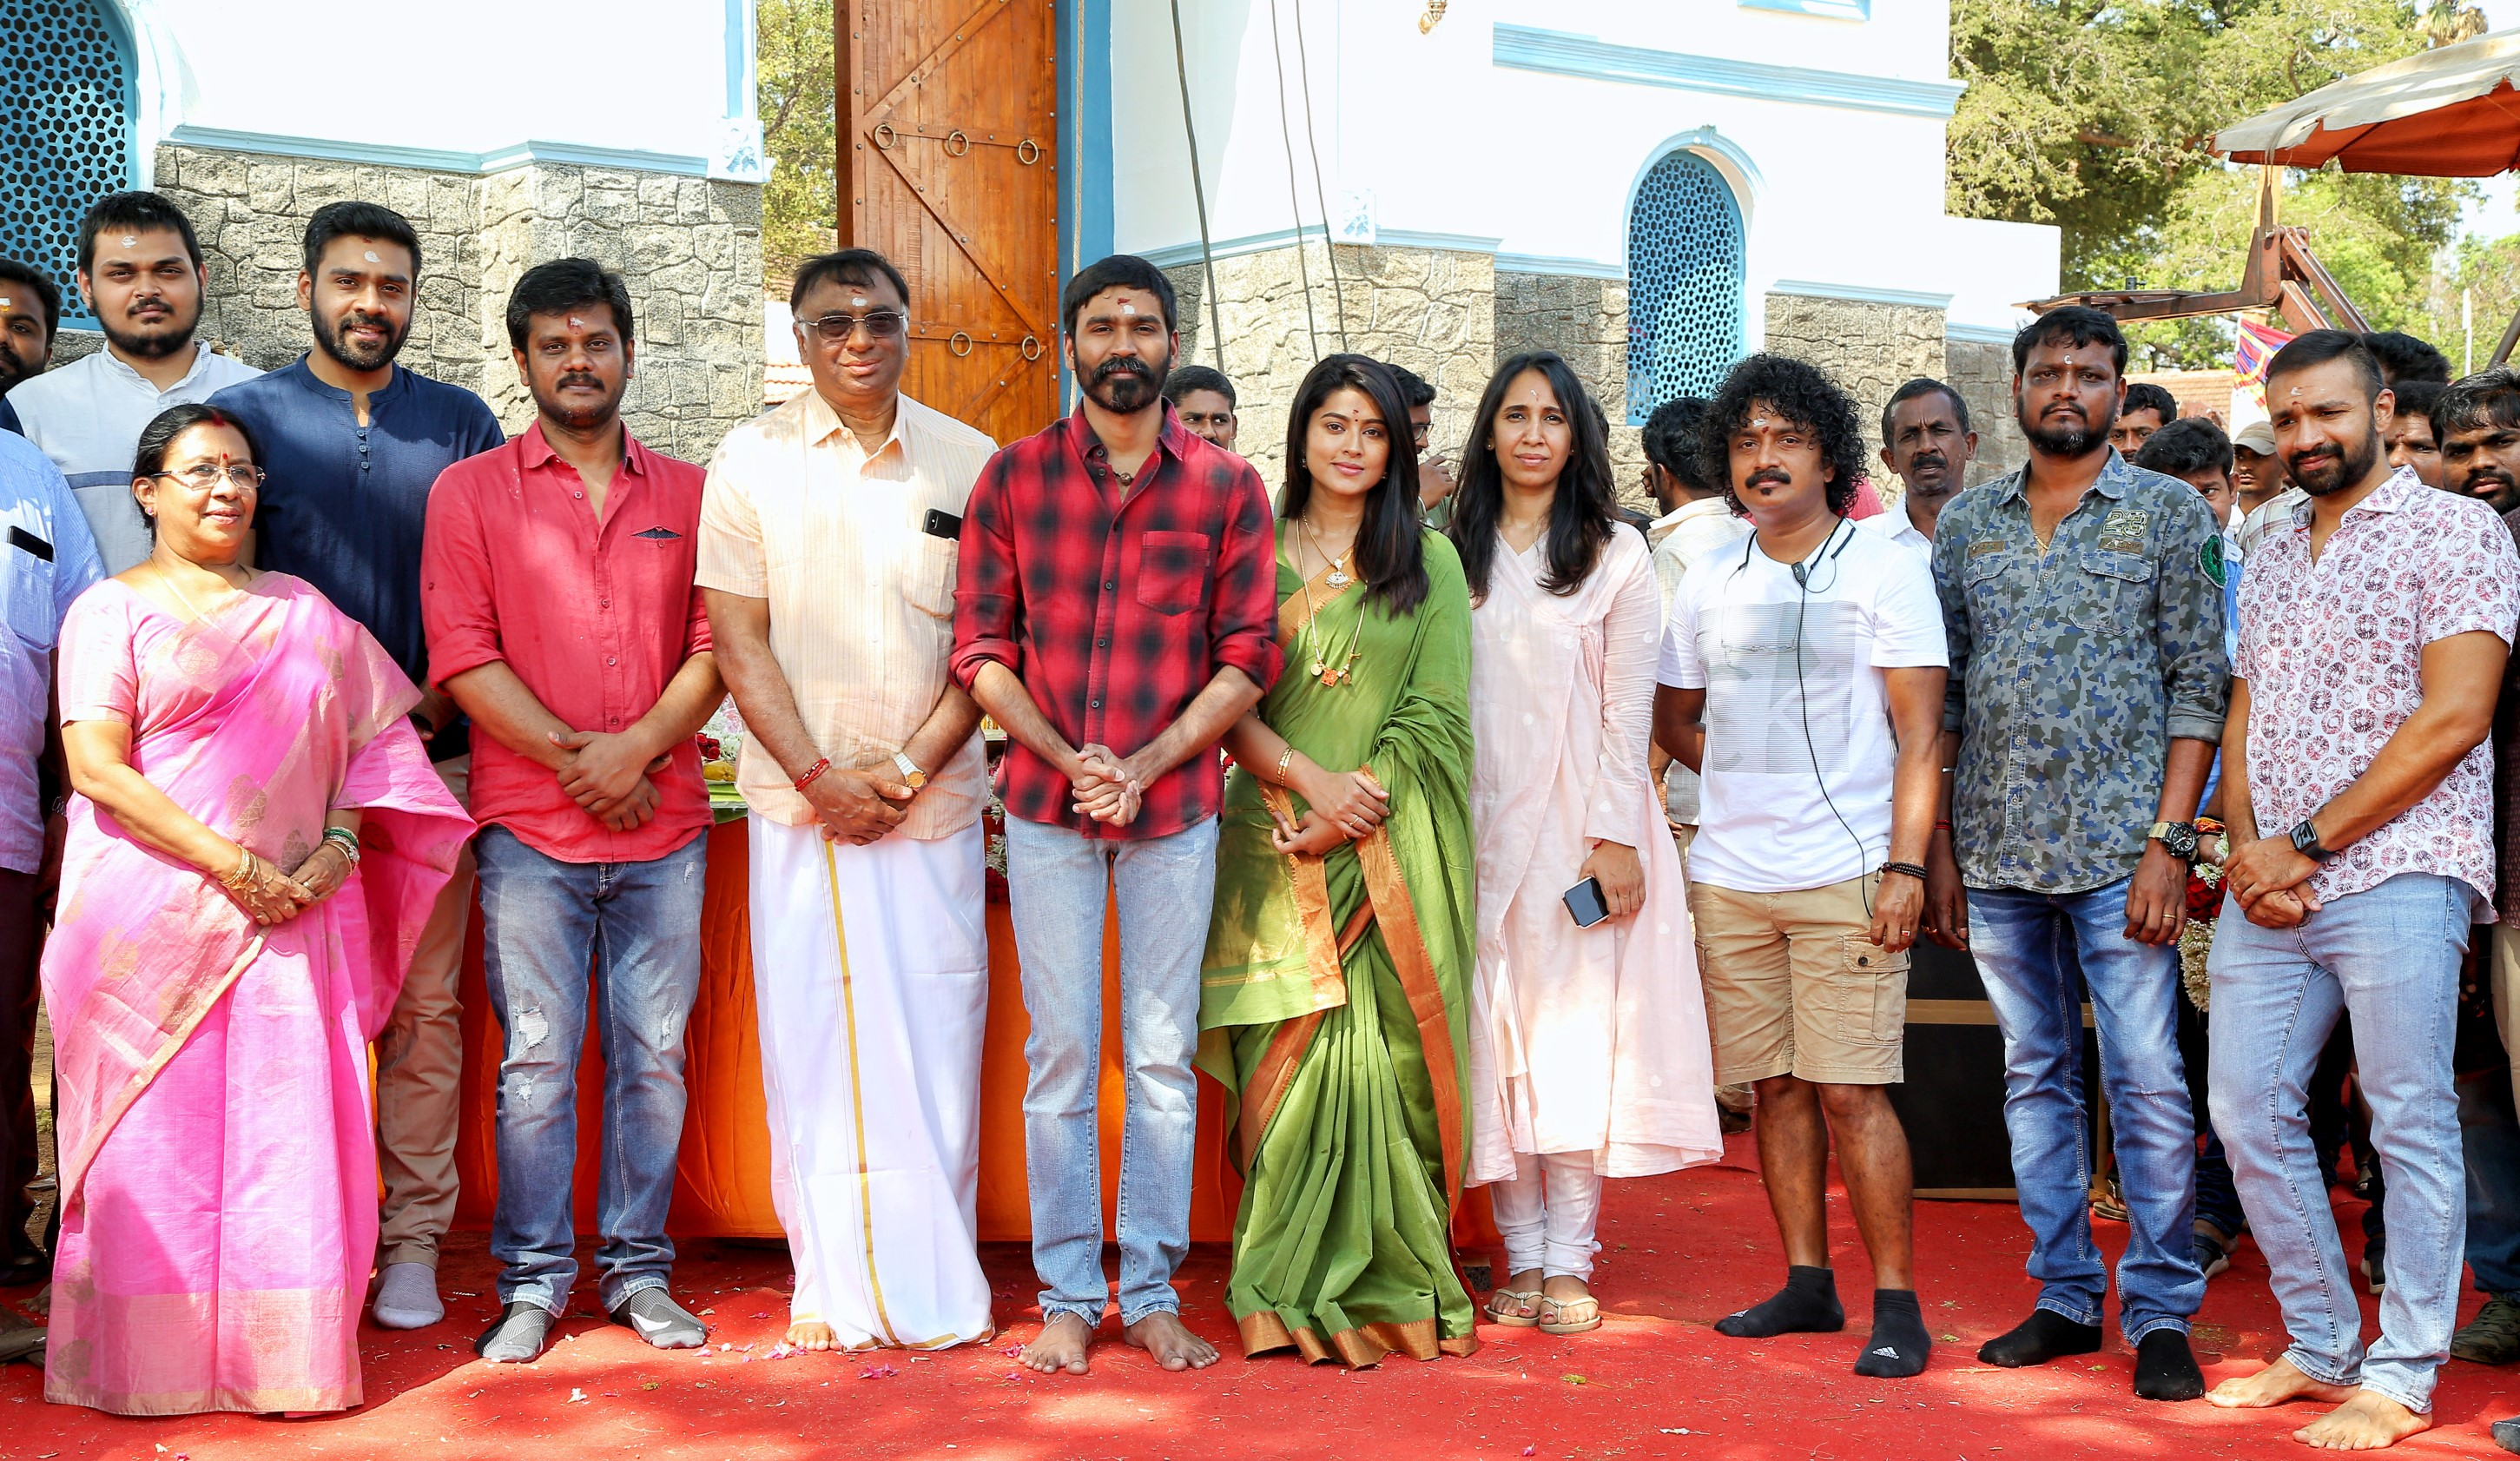 Dhanush, Sneha @ Sathya Jyothi Production No 34 Movie Pooja Stills